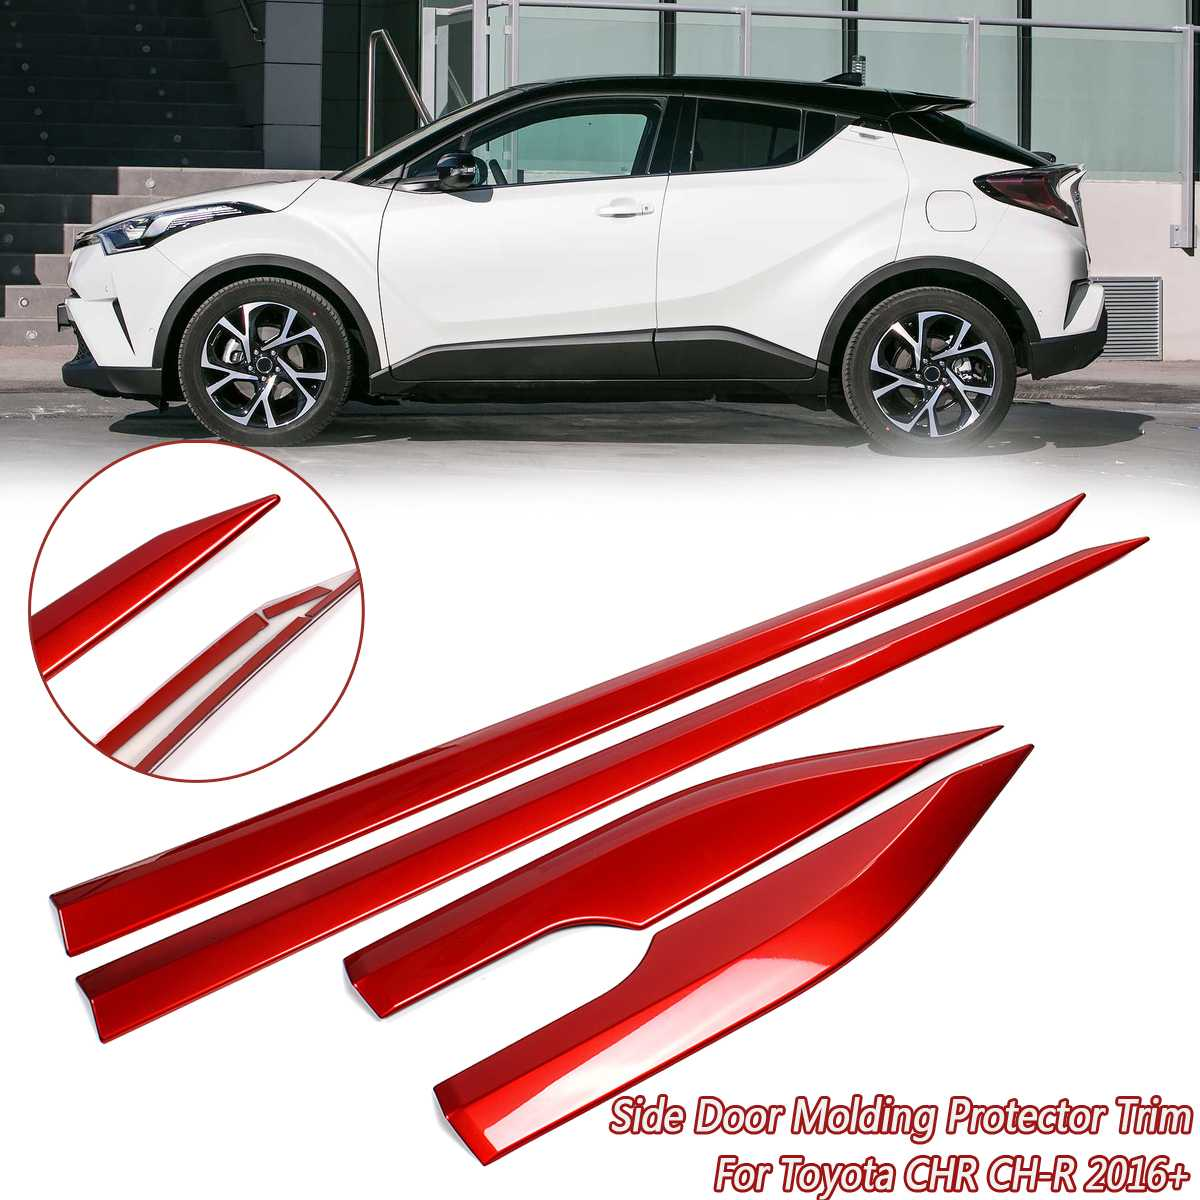 Red Side Door Molding Body Strip Streamer Protection Lid Molding Cover Trim Car Accessories For Toyota CHR CH R 2016 2017 2018+